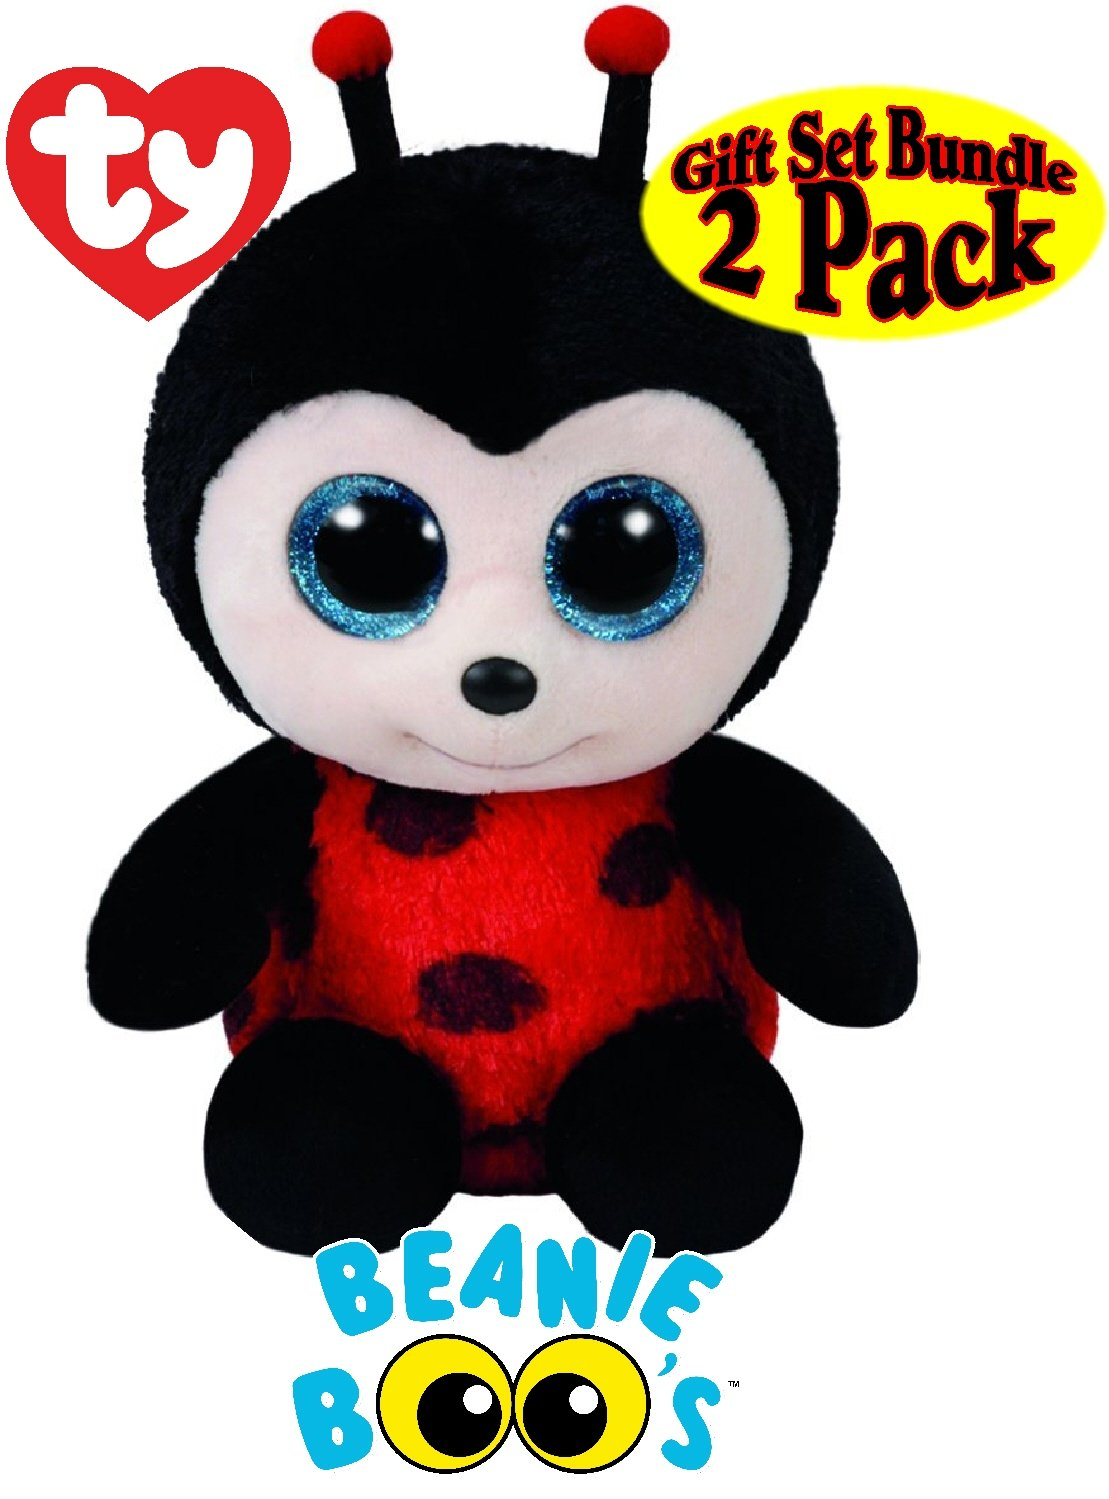 de7e9f5c8c0 Ty Beanie Boos Buzby (Bumble Bee)   Izzy (Lady Bug) Gift Set Bundle With  Bonus